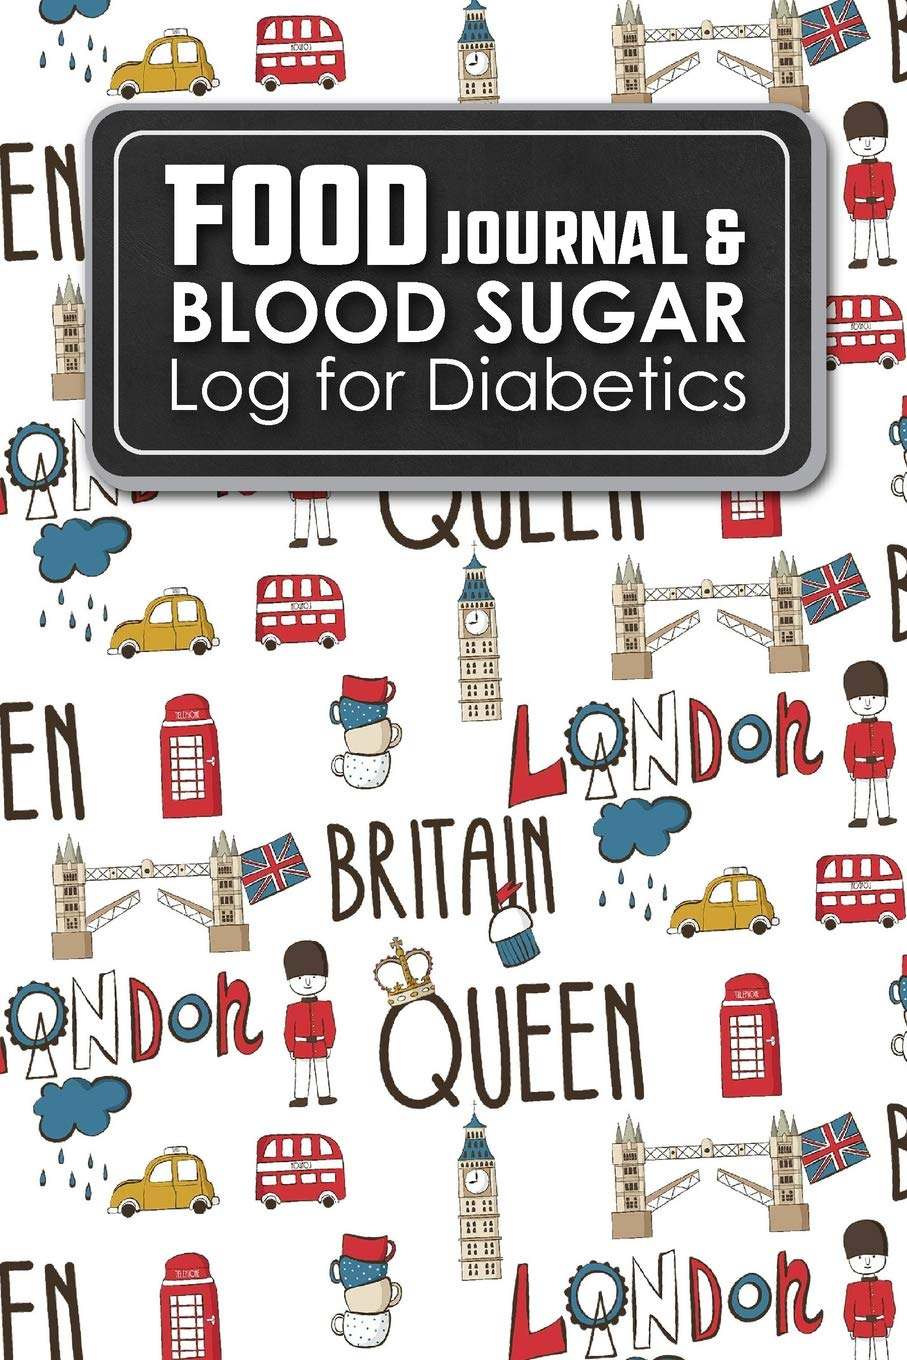 Food Journal Blood Sugar Log For Diabetics Blood Glucose Chart Diabetes Blood Check Food Diary Diabetic Cute London Cover Volume 34 Publishing Rogue Plus 9781717020017 Amazon Com Books